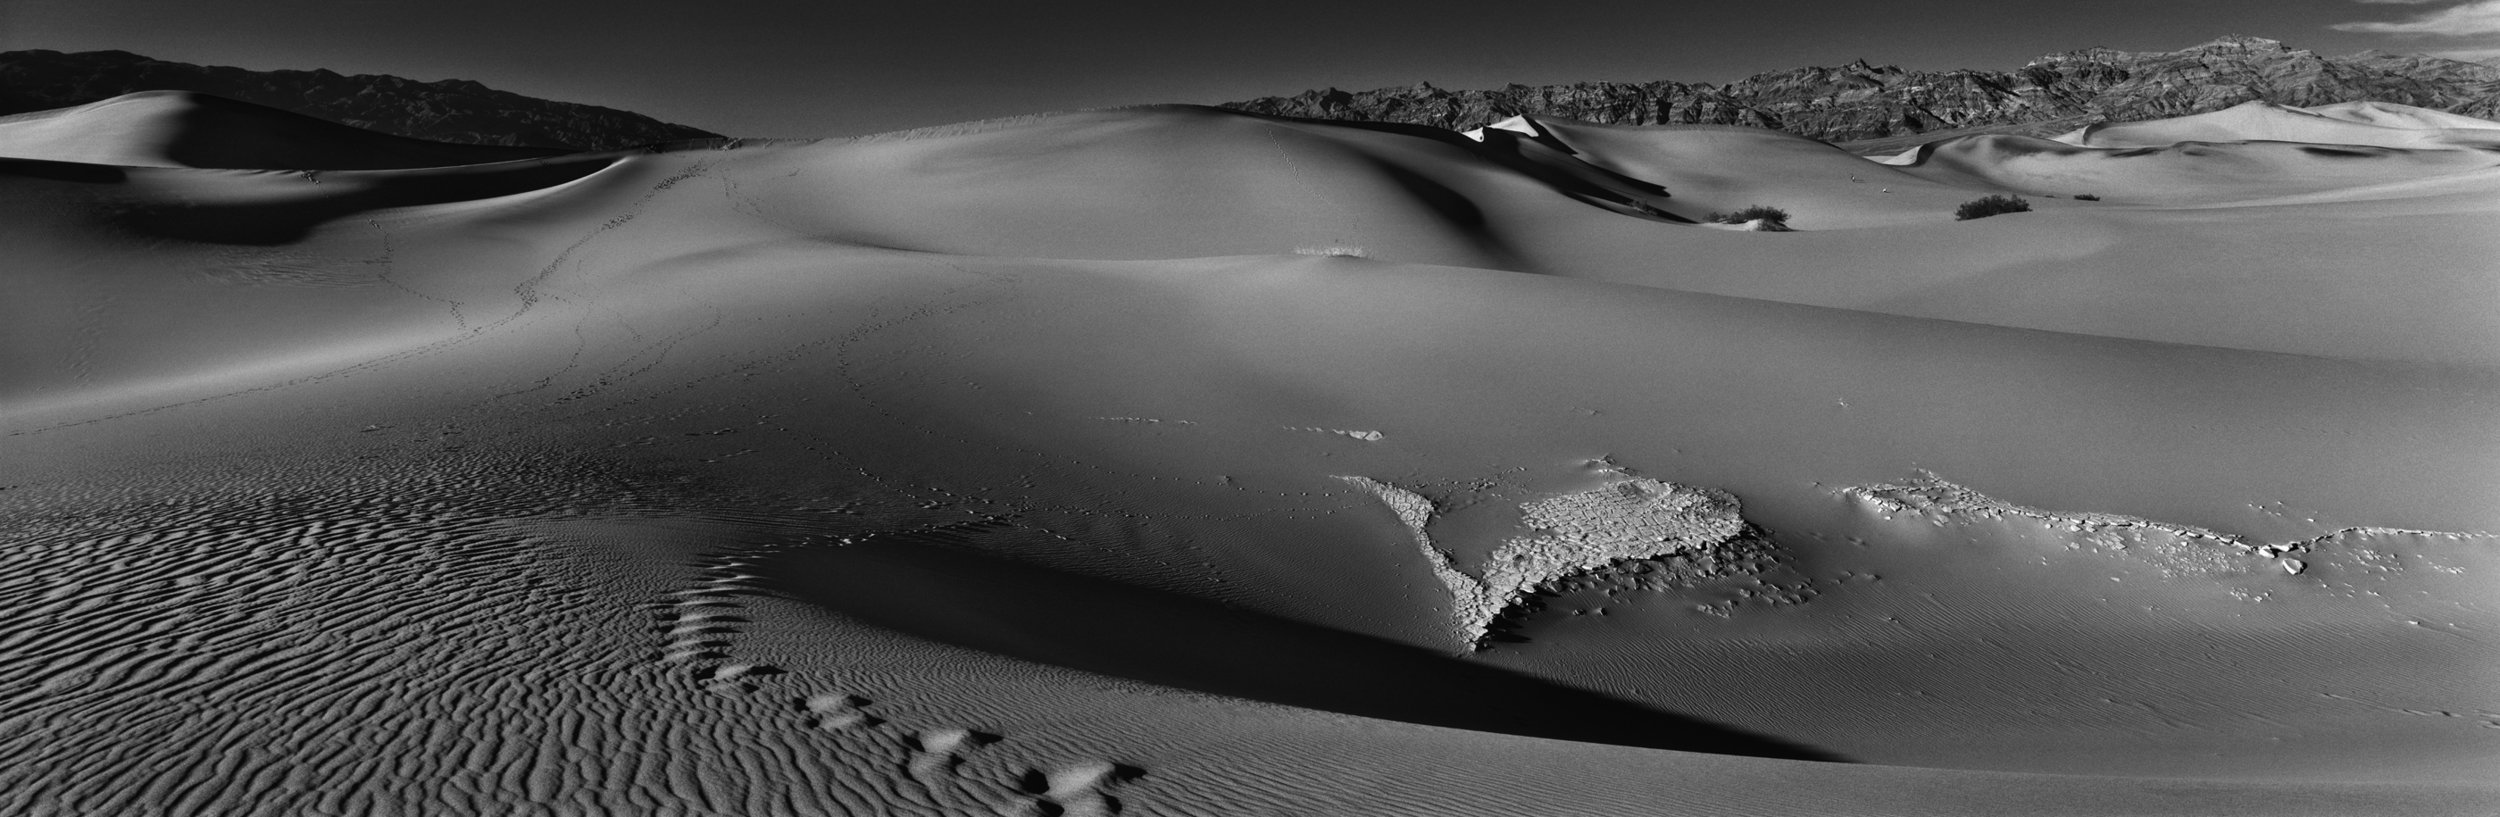 Mesquite Sand Dunes- Death Valley National Park, California and Nevada